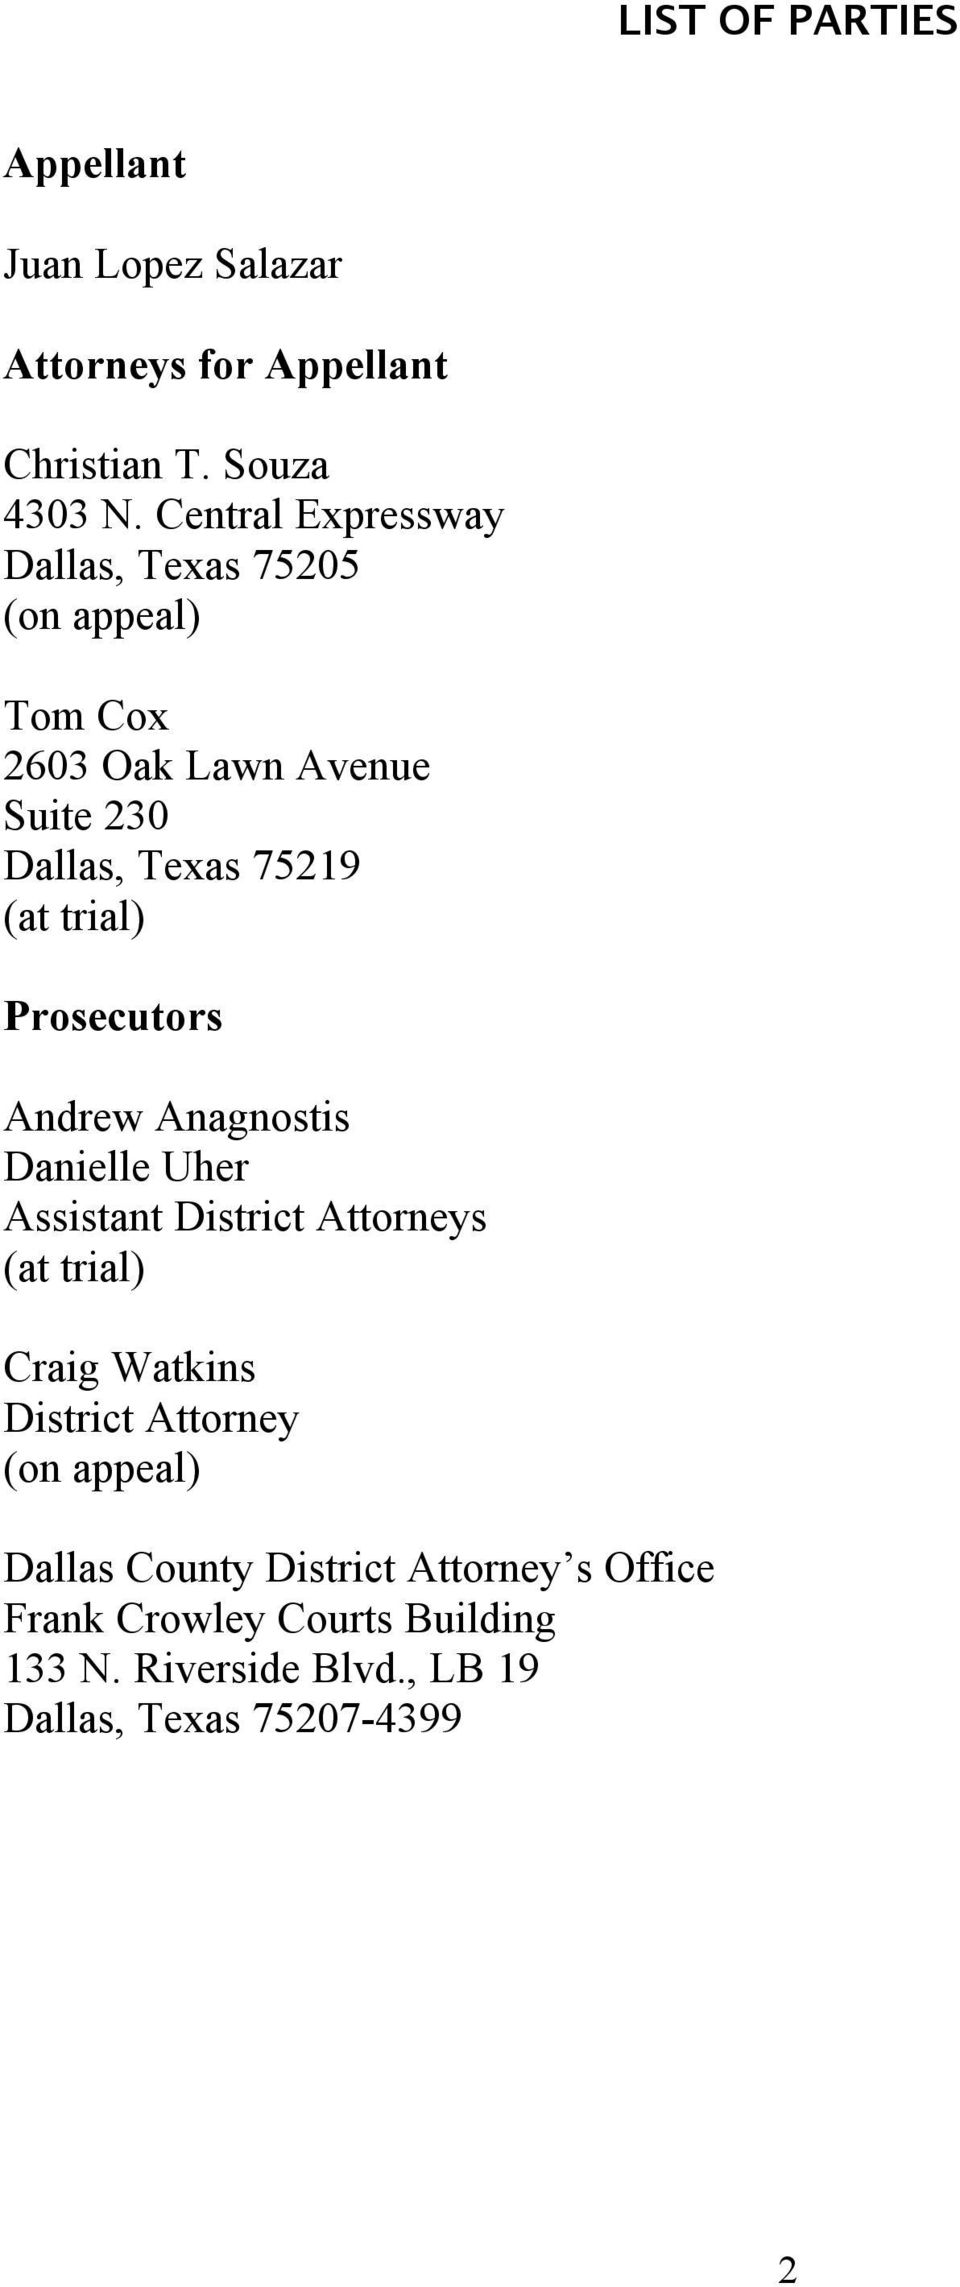 trial) Prosecutors Andrew Anagnostis Danielle Uher Assistant District Attorneys (at trial) Craig Watkins District